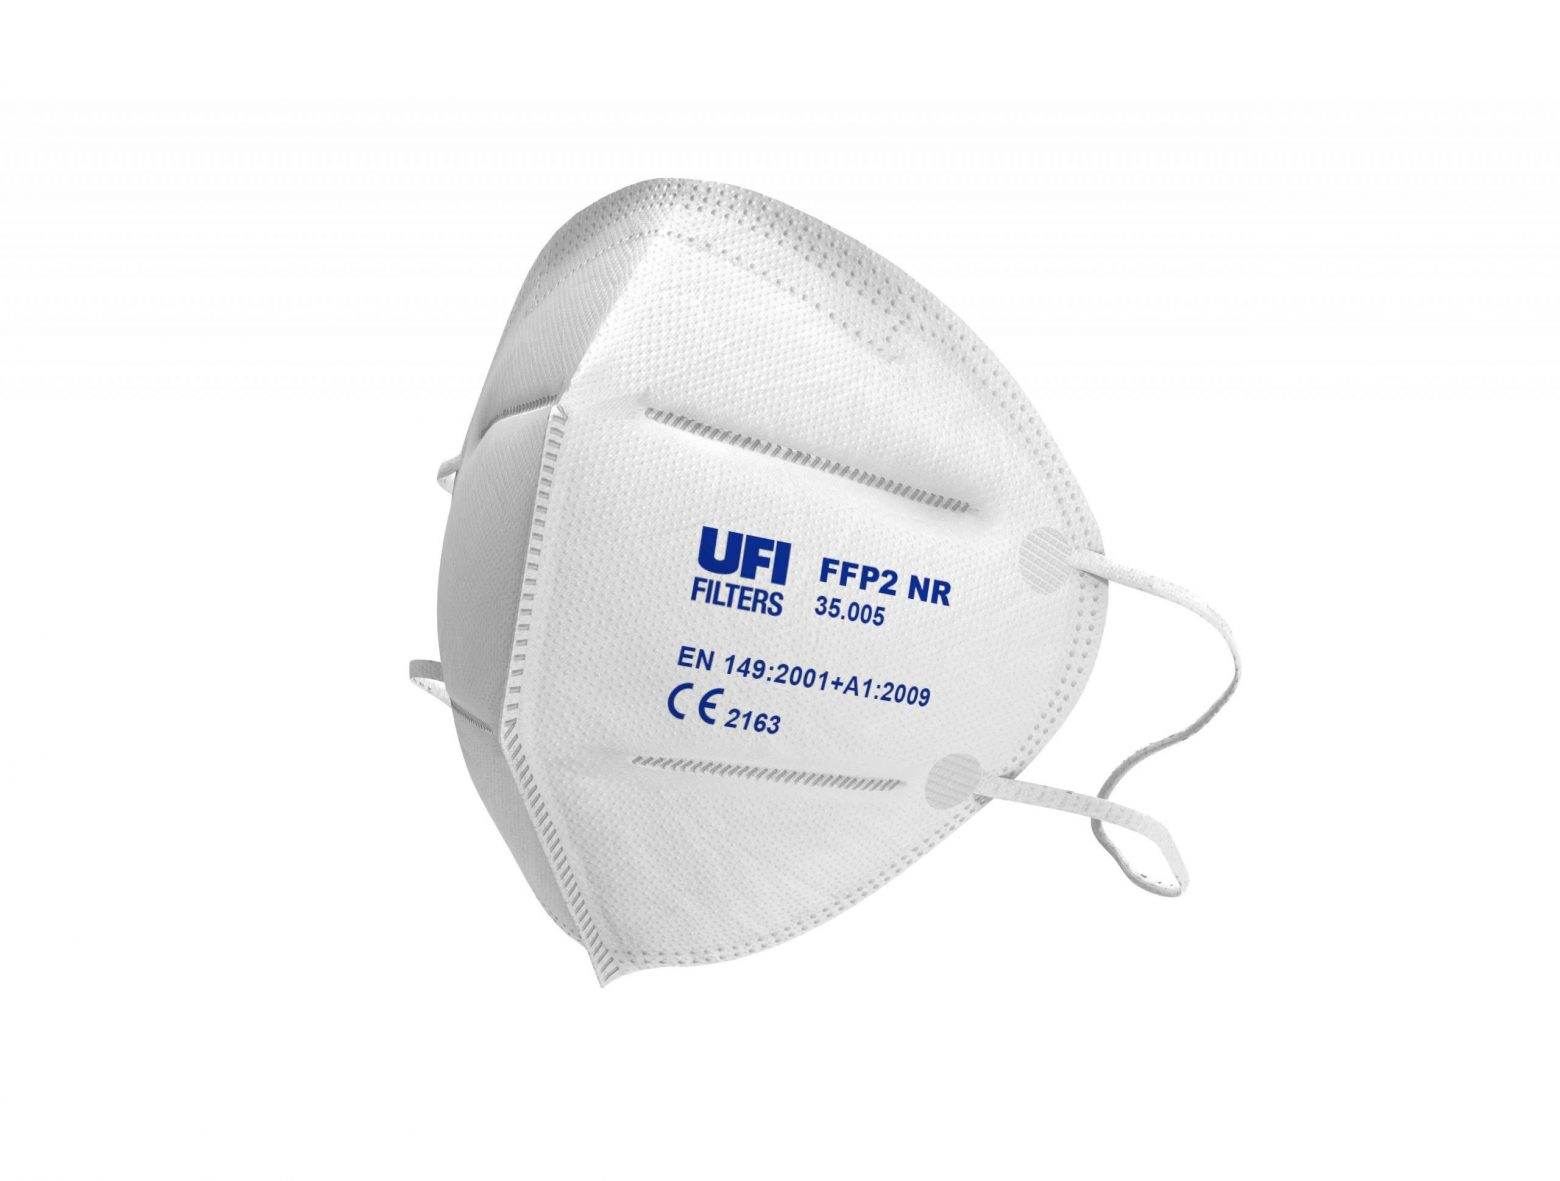 Ufi Filters mascherine